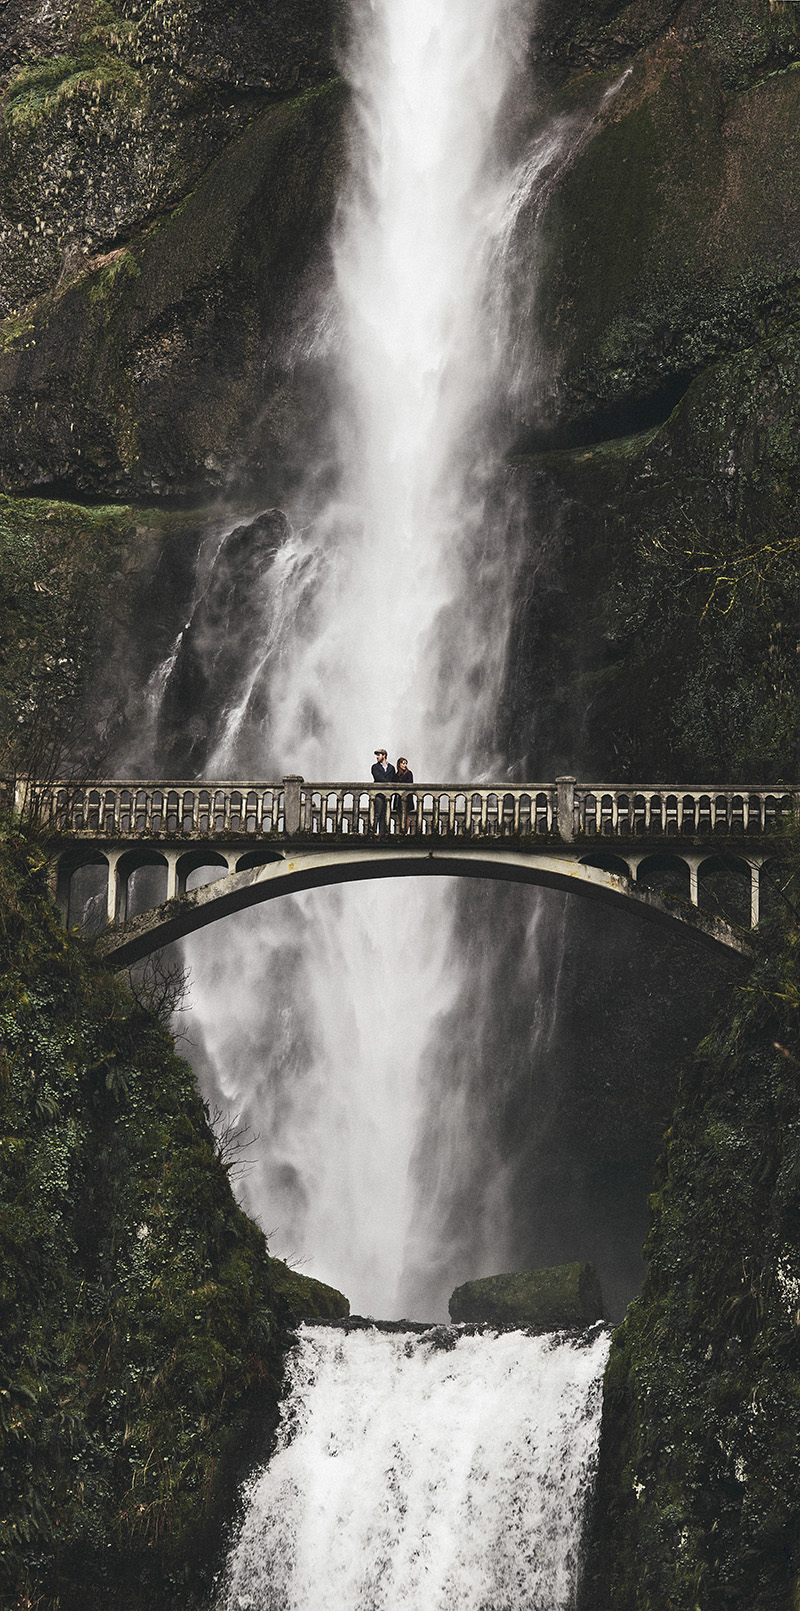 Portland Engagement Photographer - Karen & Josh on the bridge at Multnomah Falls